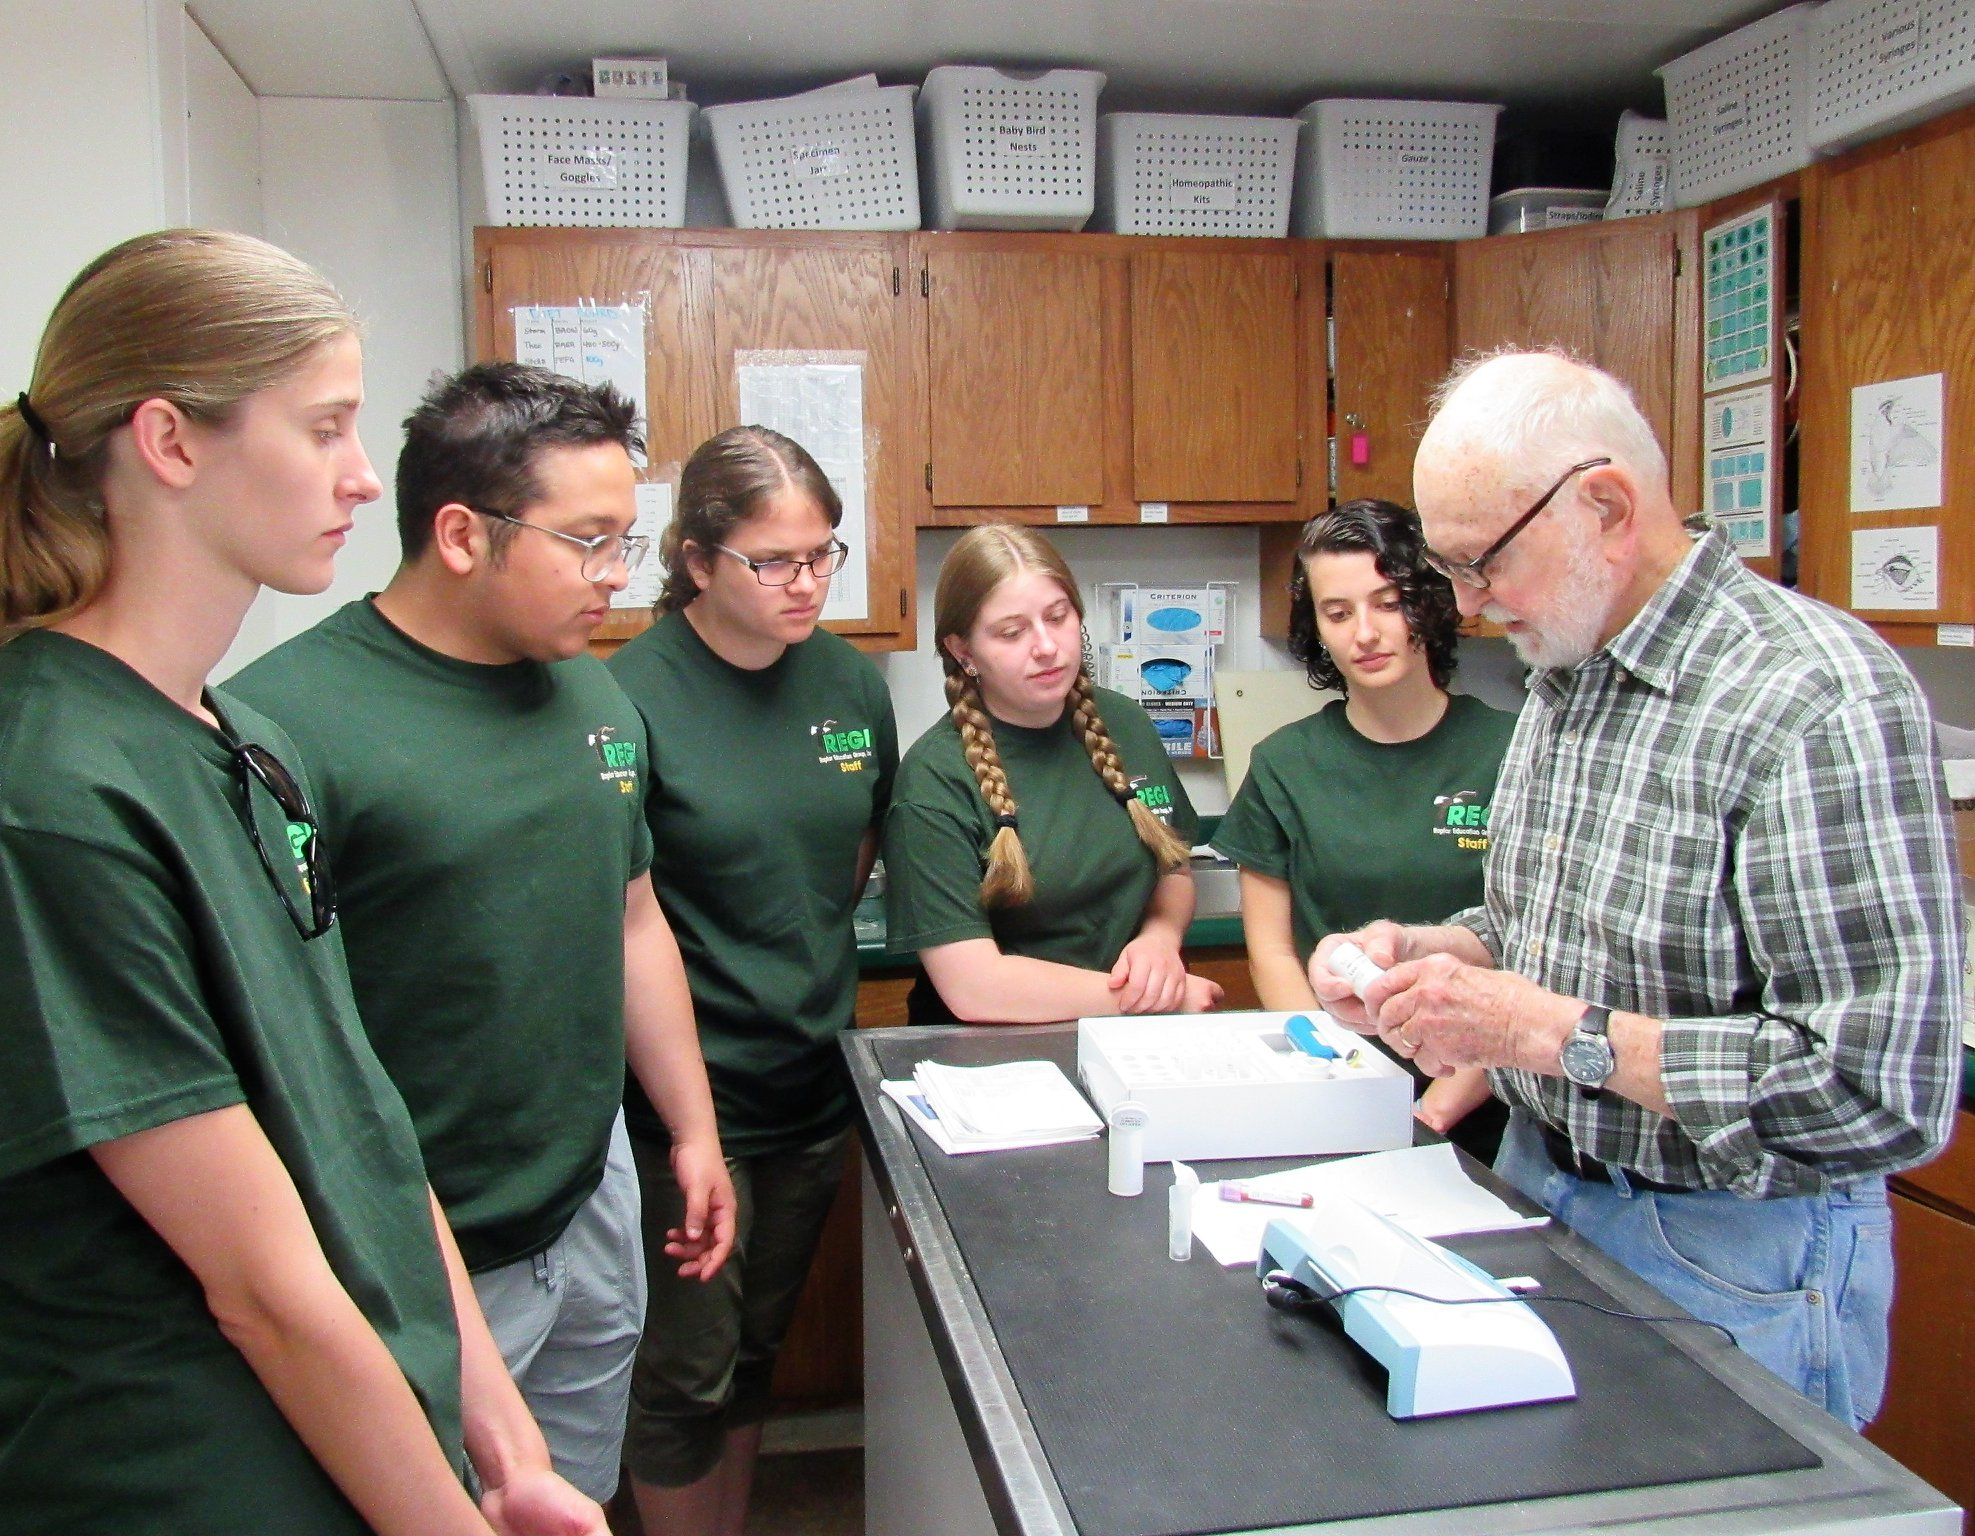 Don Gibson testing the eagles blood for lead poisoning with the interns observing.